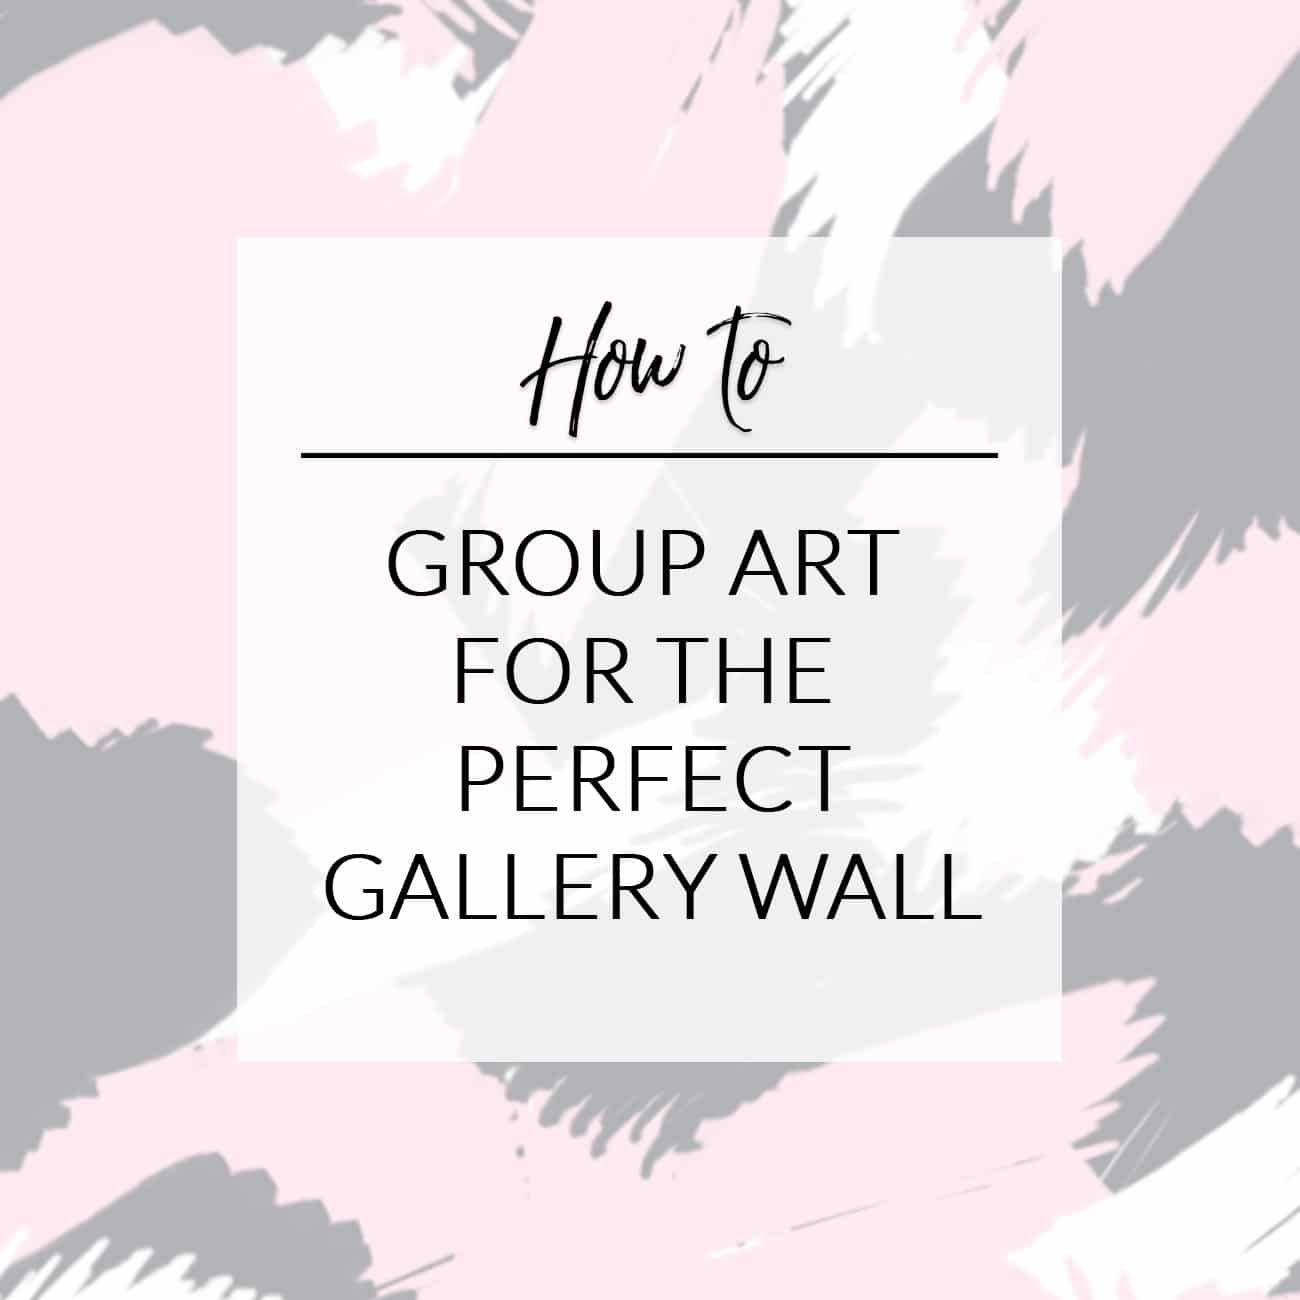 How to Group Art for a Gallery Wall